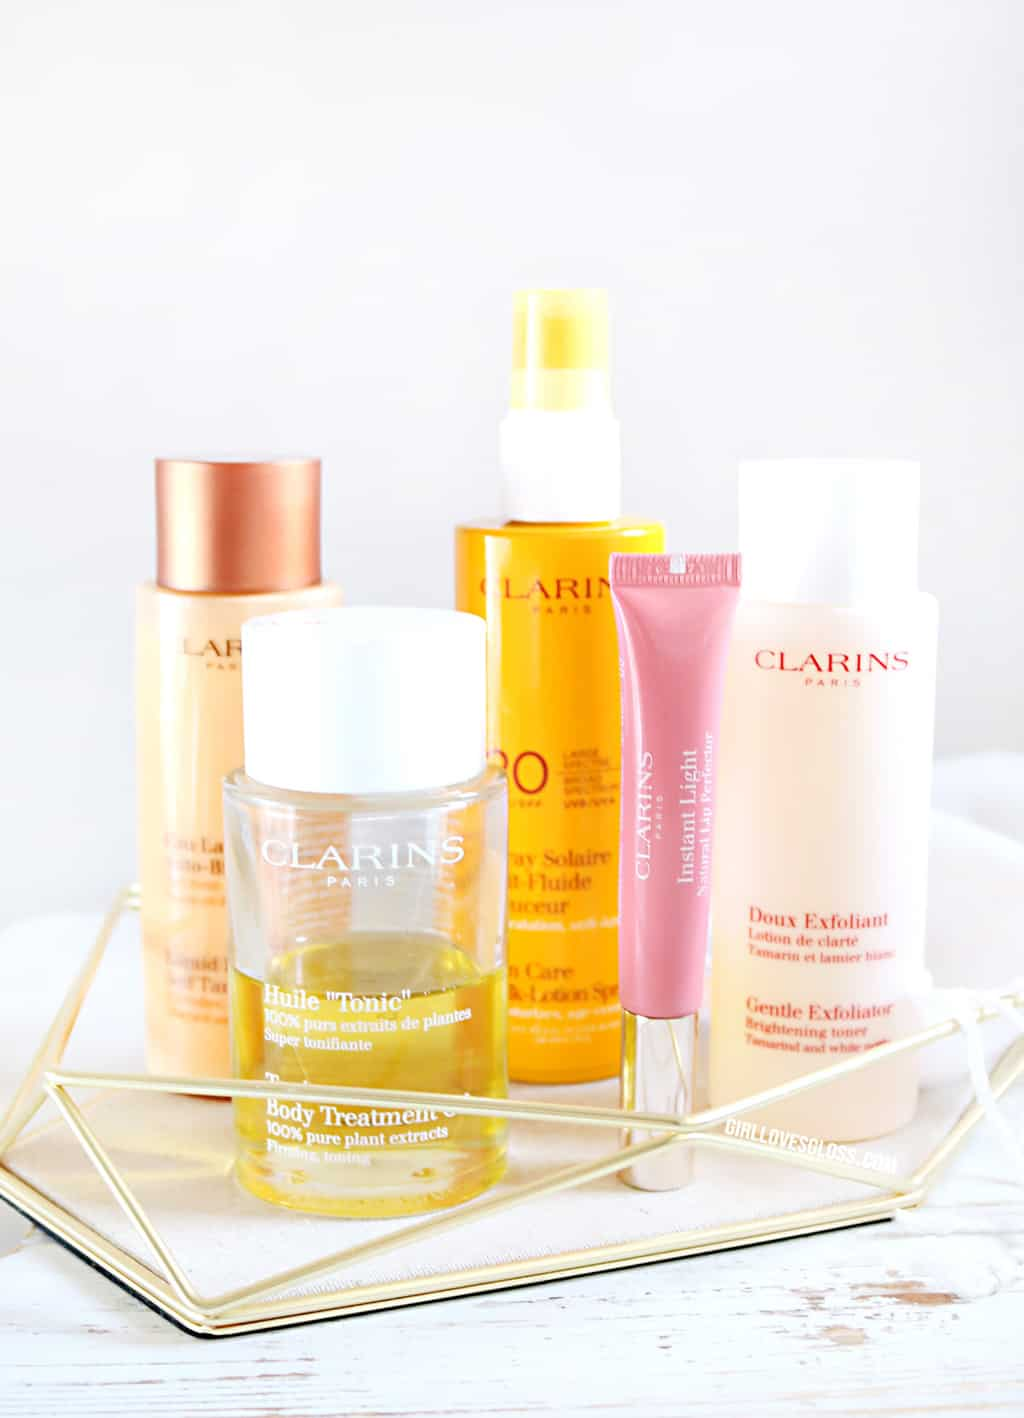 Hero Products | Top 5 From Clarins